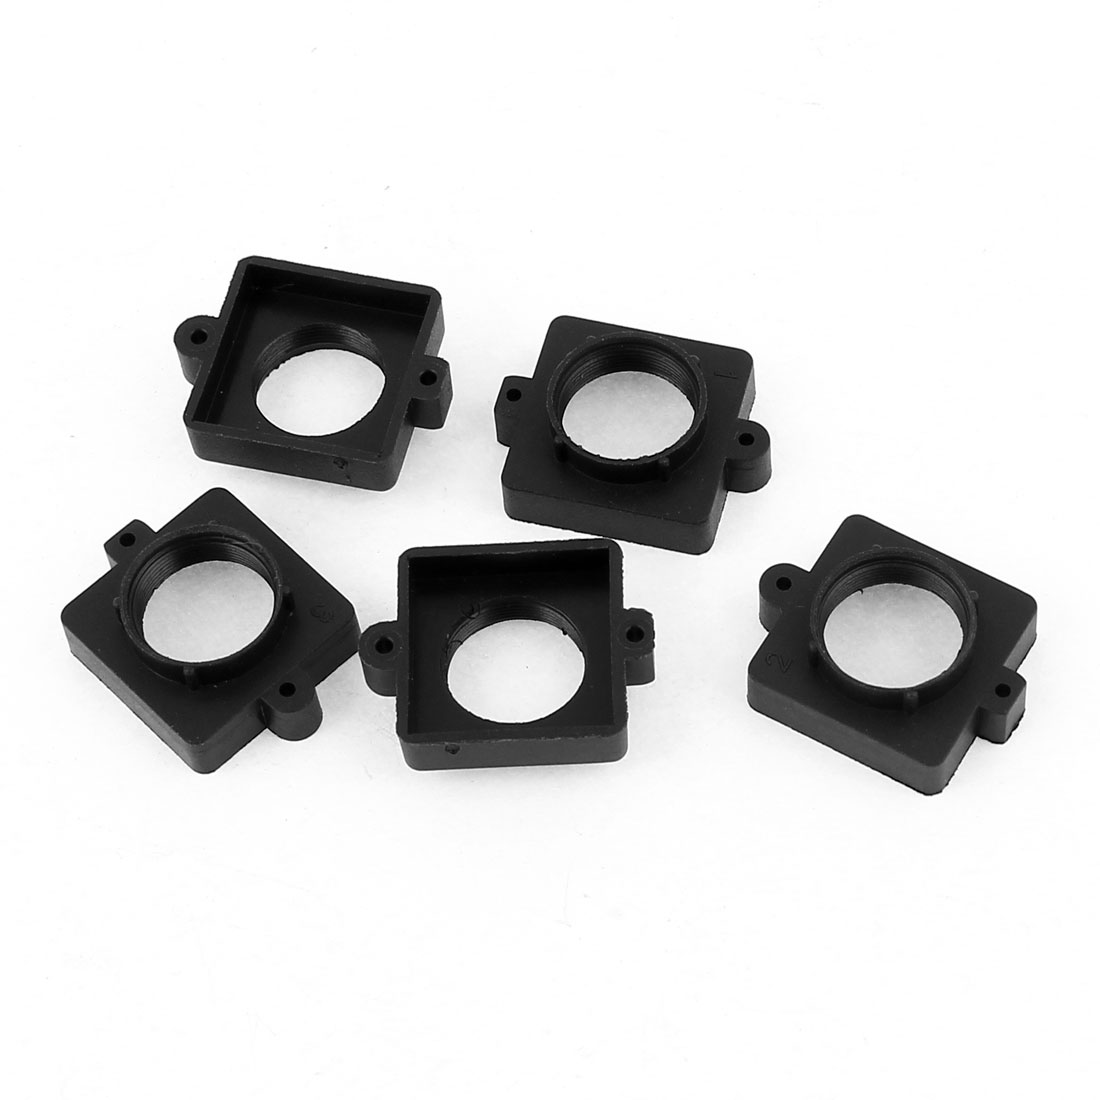 5 Pcs HD27 M12 CCTV Camera CCD Lens Mount Holder 20mm Spacing